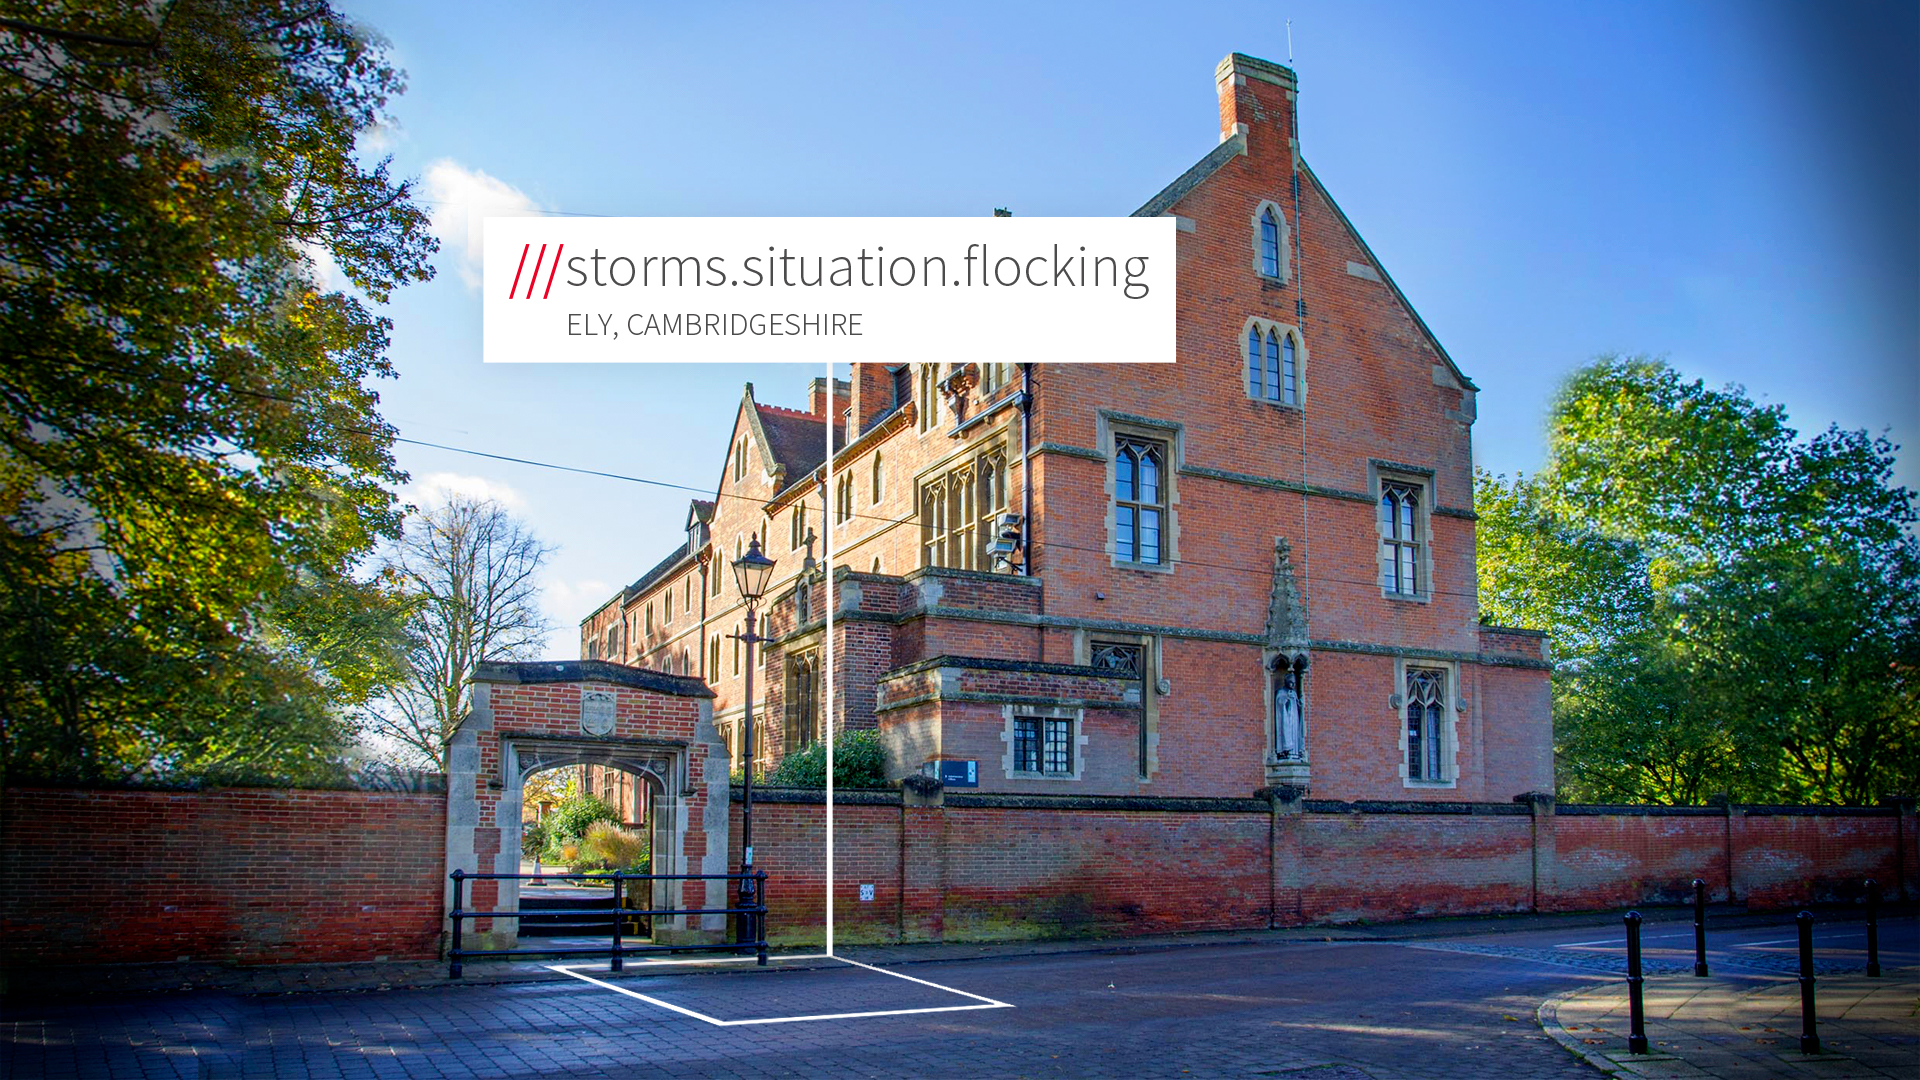 Redbrick school at 3 words location Storms.Situation.Flocking